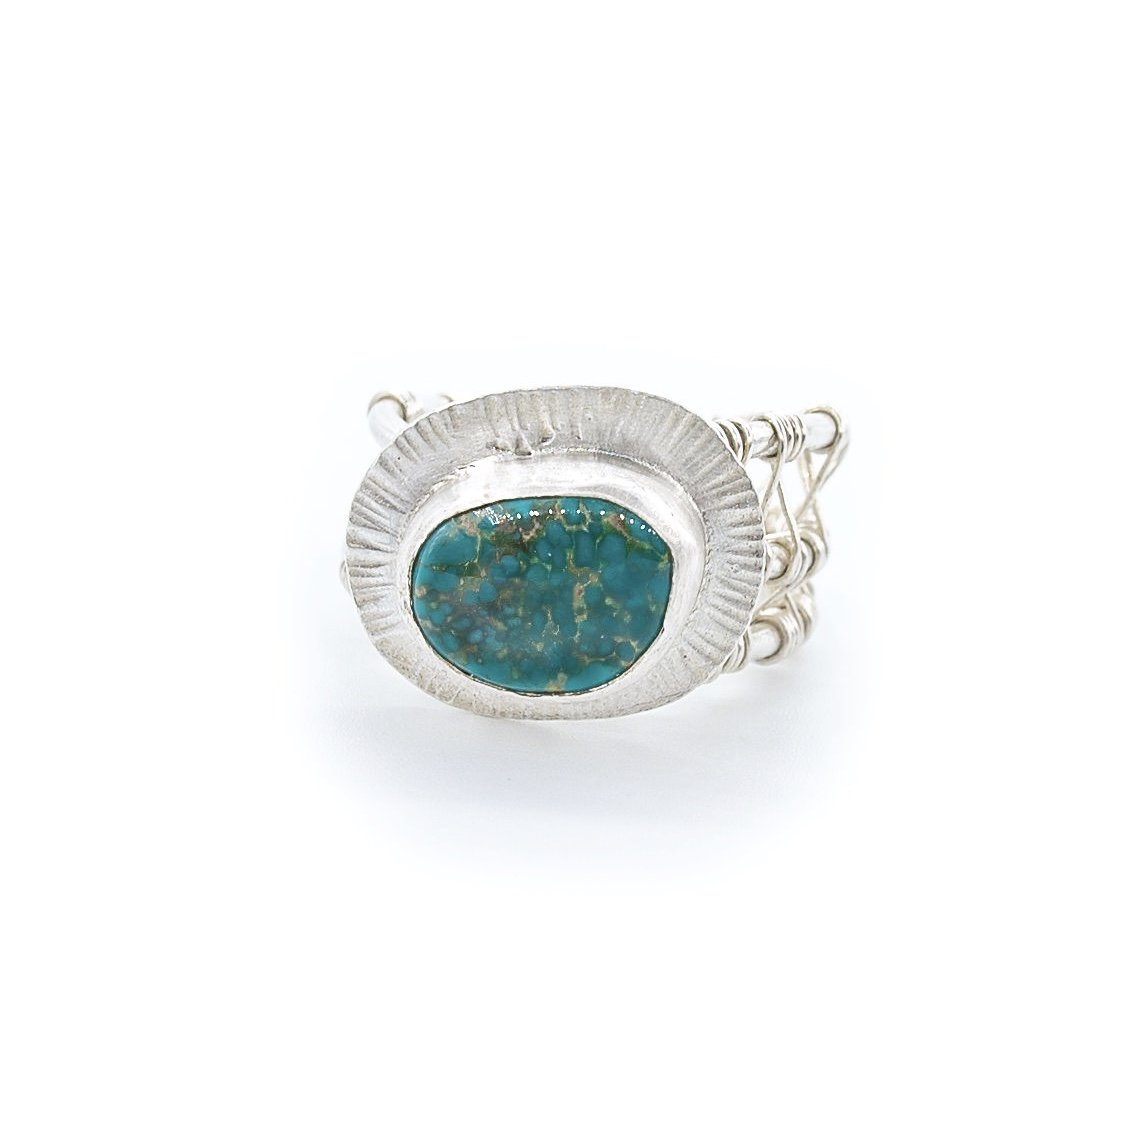 Pilot Mountain Turquoise Ring in Silver by Original Sin Jewelry